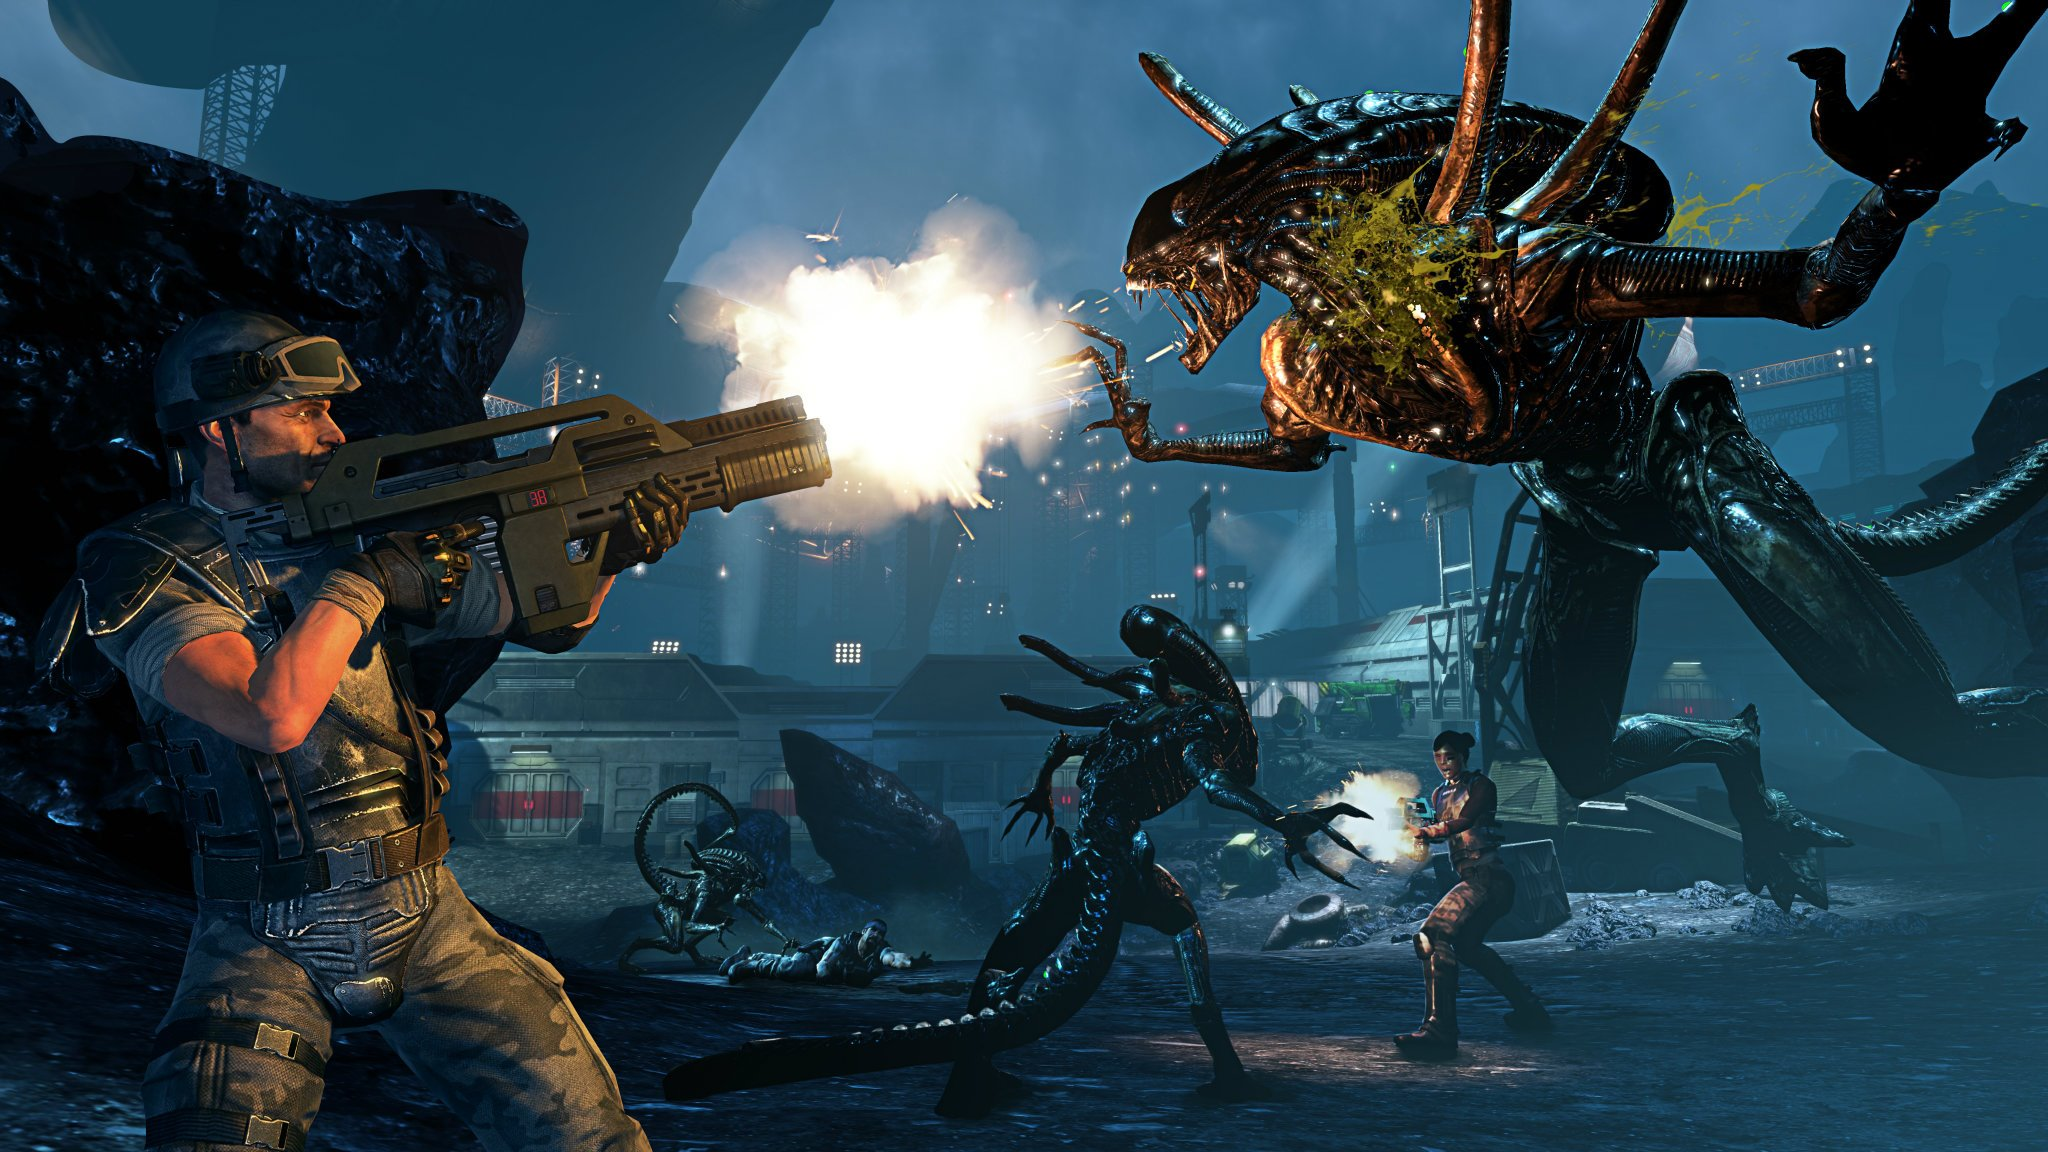 3. Aliens: Colonial Marines